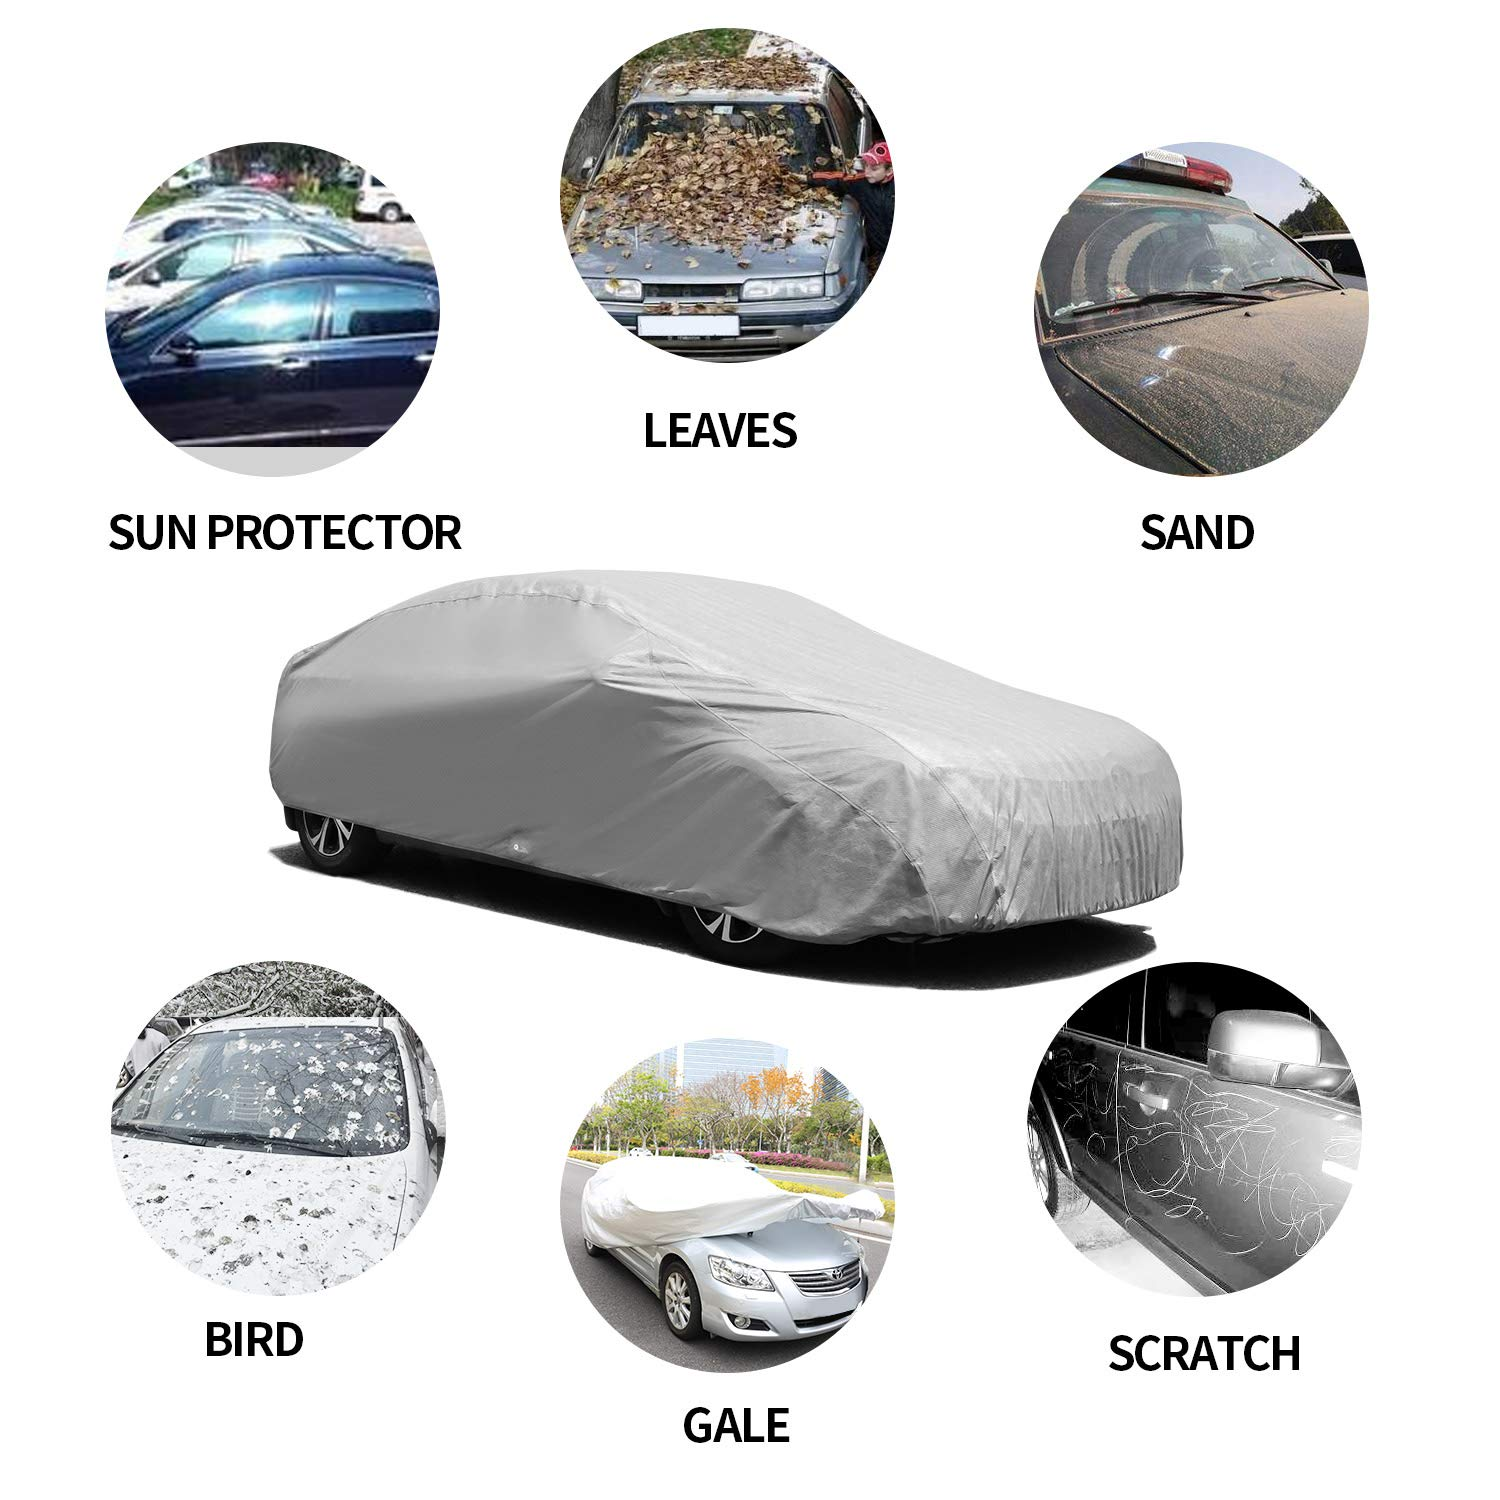 Sedan Cover for Indoor Dustproof Windproof 185 3 Layer Composite Universal Fit for Car Covers Easy to Use